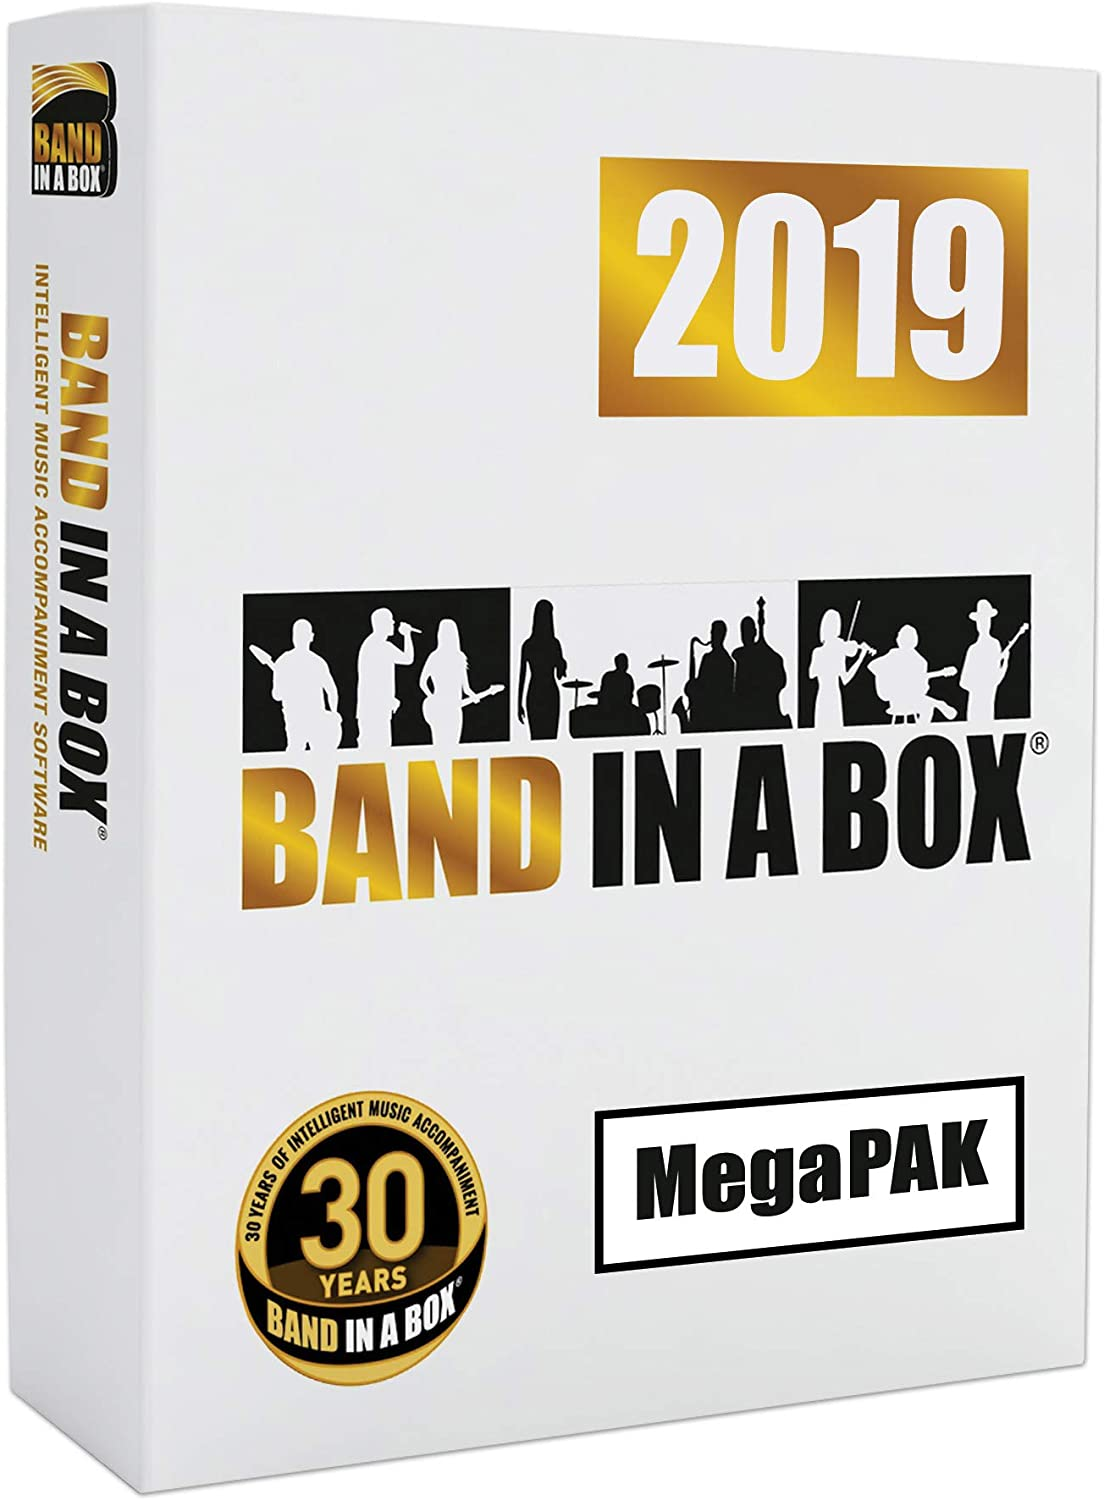 PG Music Band in a Box MegaPak 2019 PC Windows Mega Pack Music Software